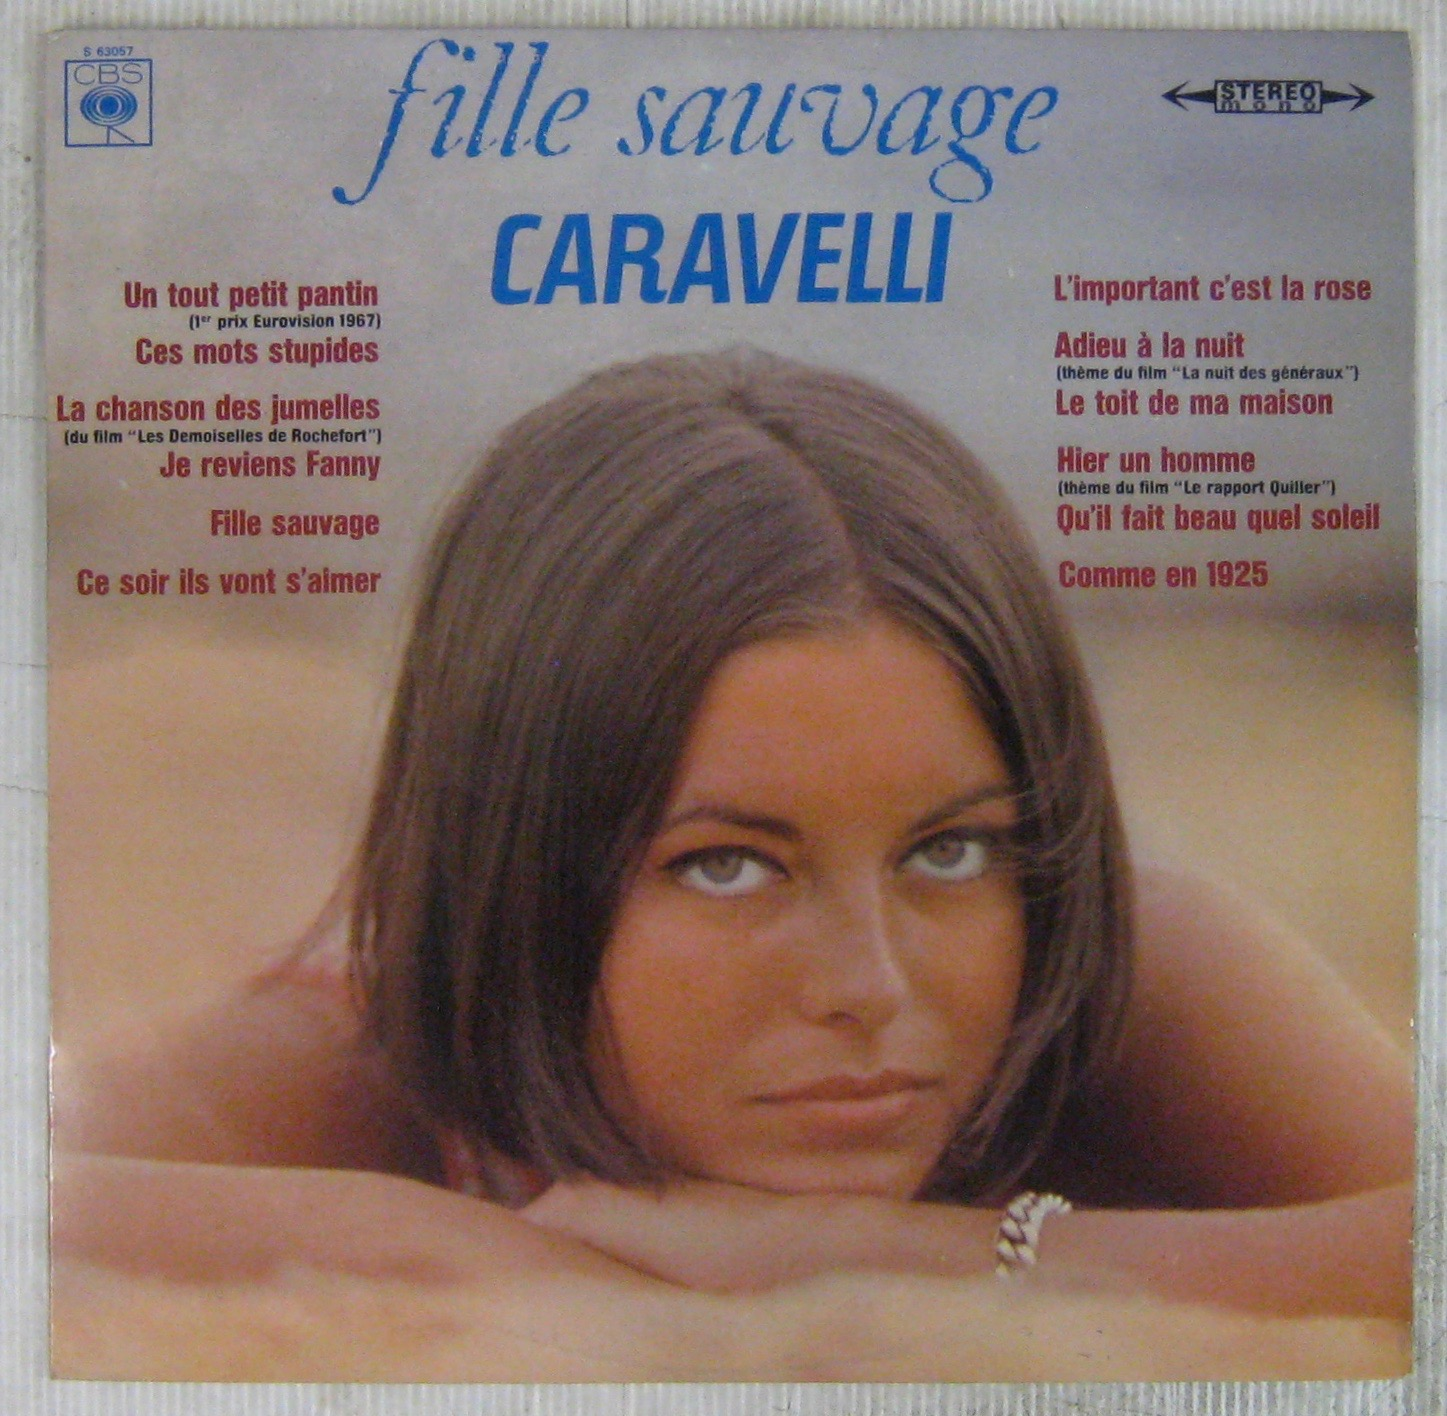 CARAVELLI - Fille sauvage - 33T